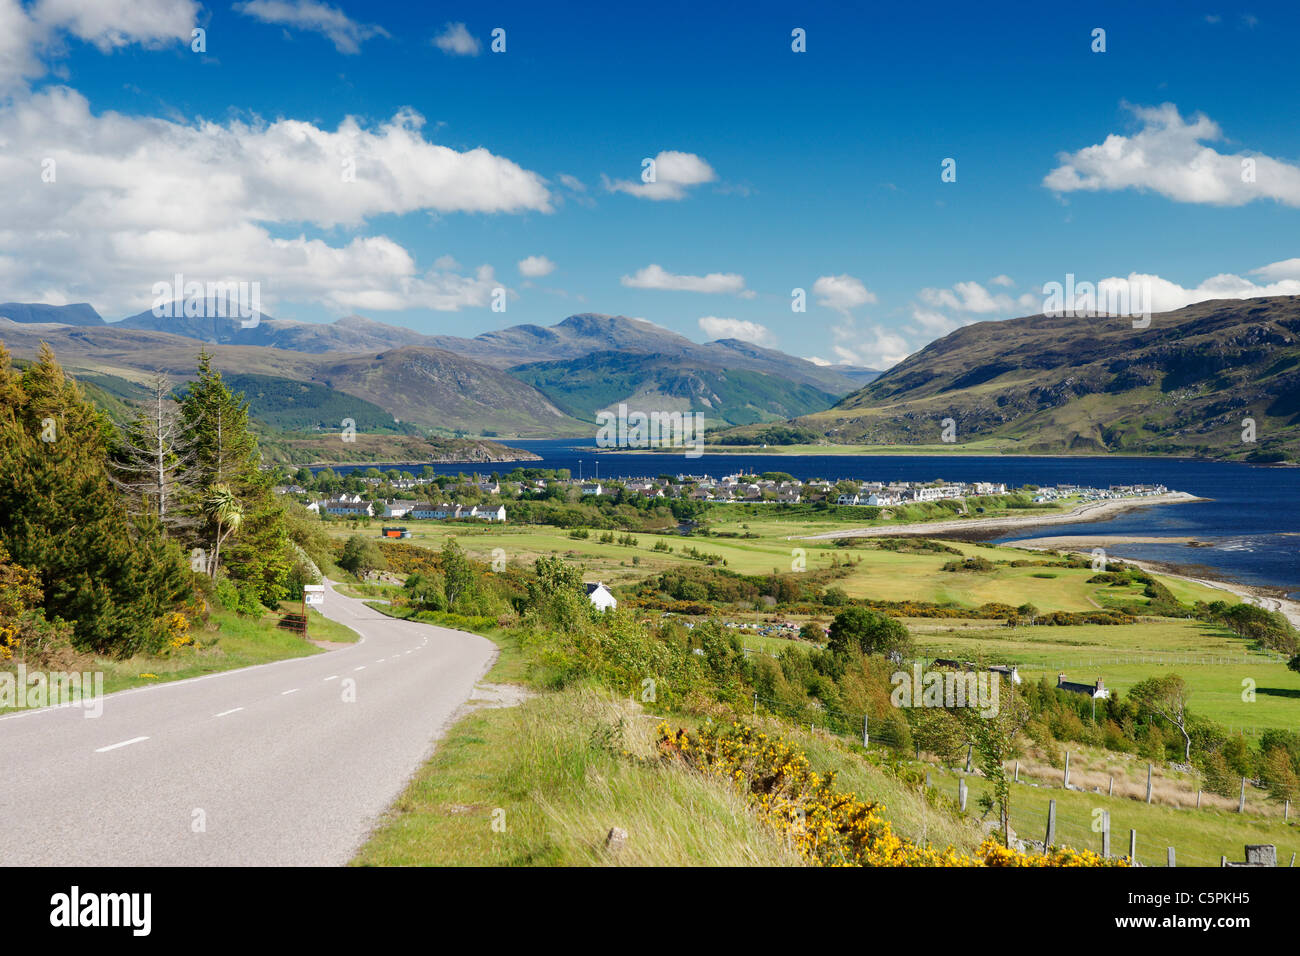 The A835 main road and view over Ullapool and Loch Broom, Ross and Cromarty, Highland, Scotland, UK - Stock Image